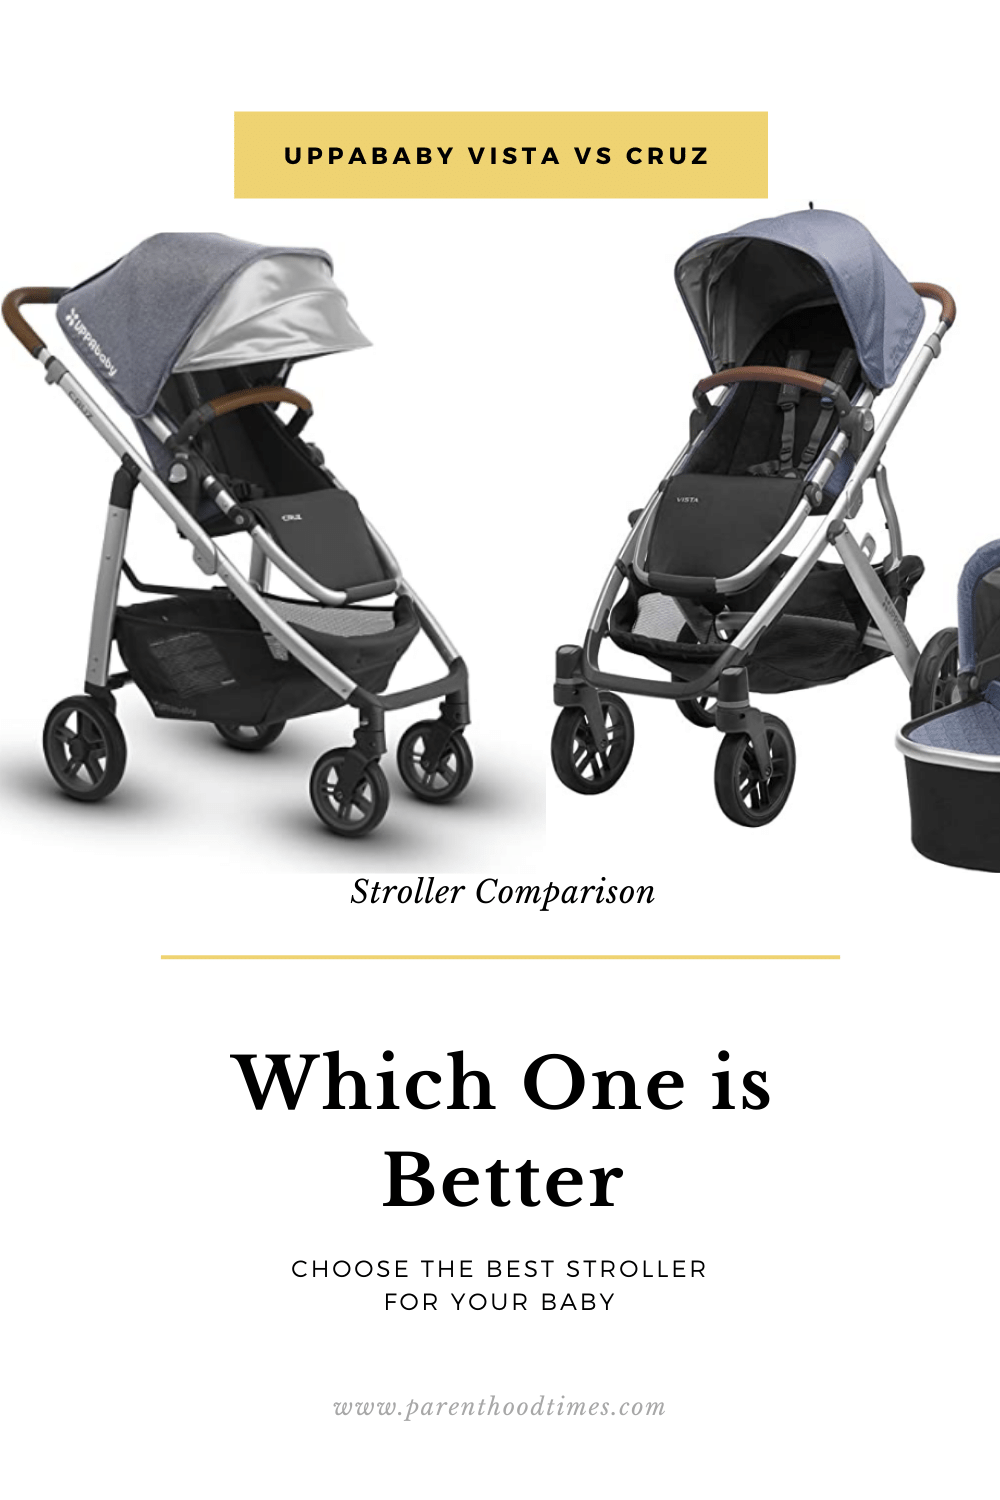 UPPAbaby Vista vs Cruz Comparison 2020 Which One is